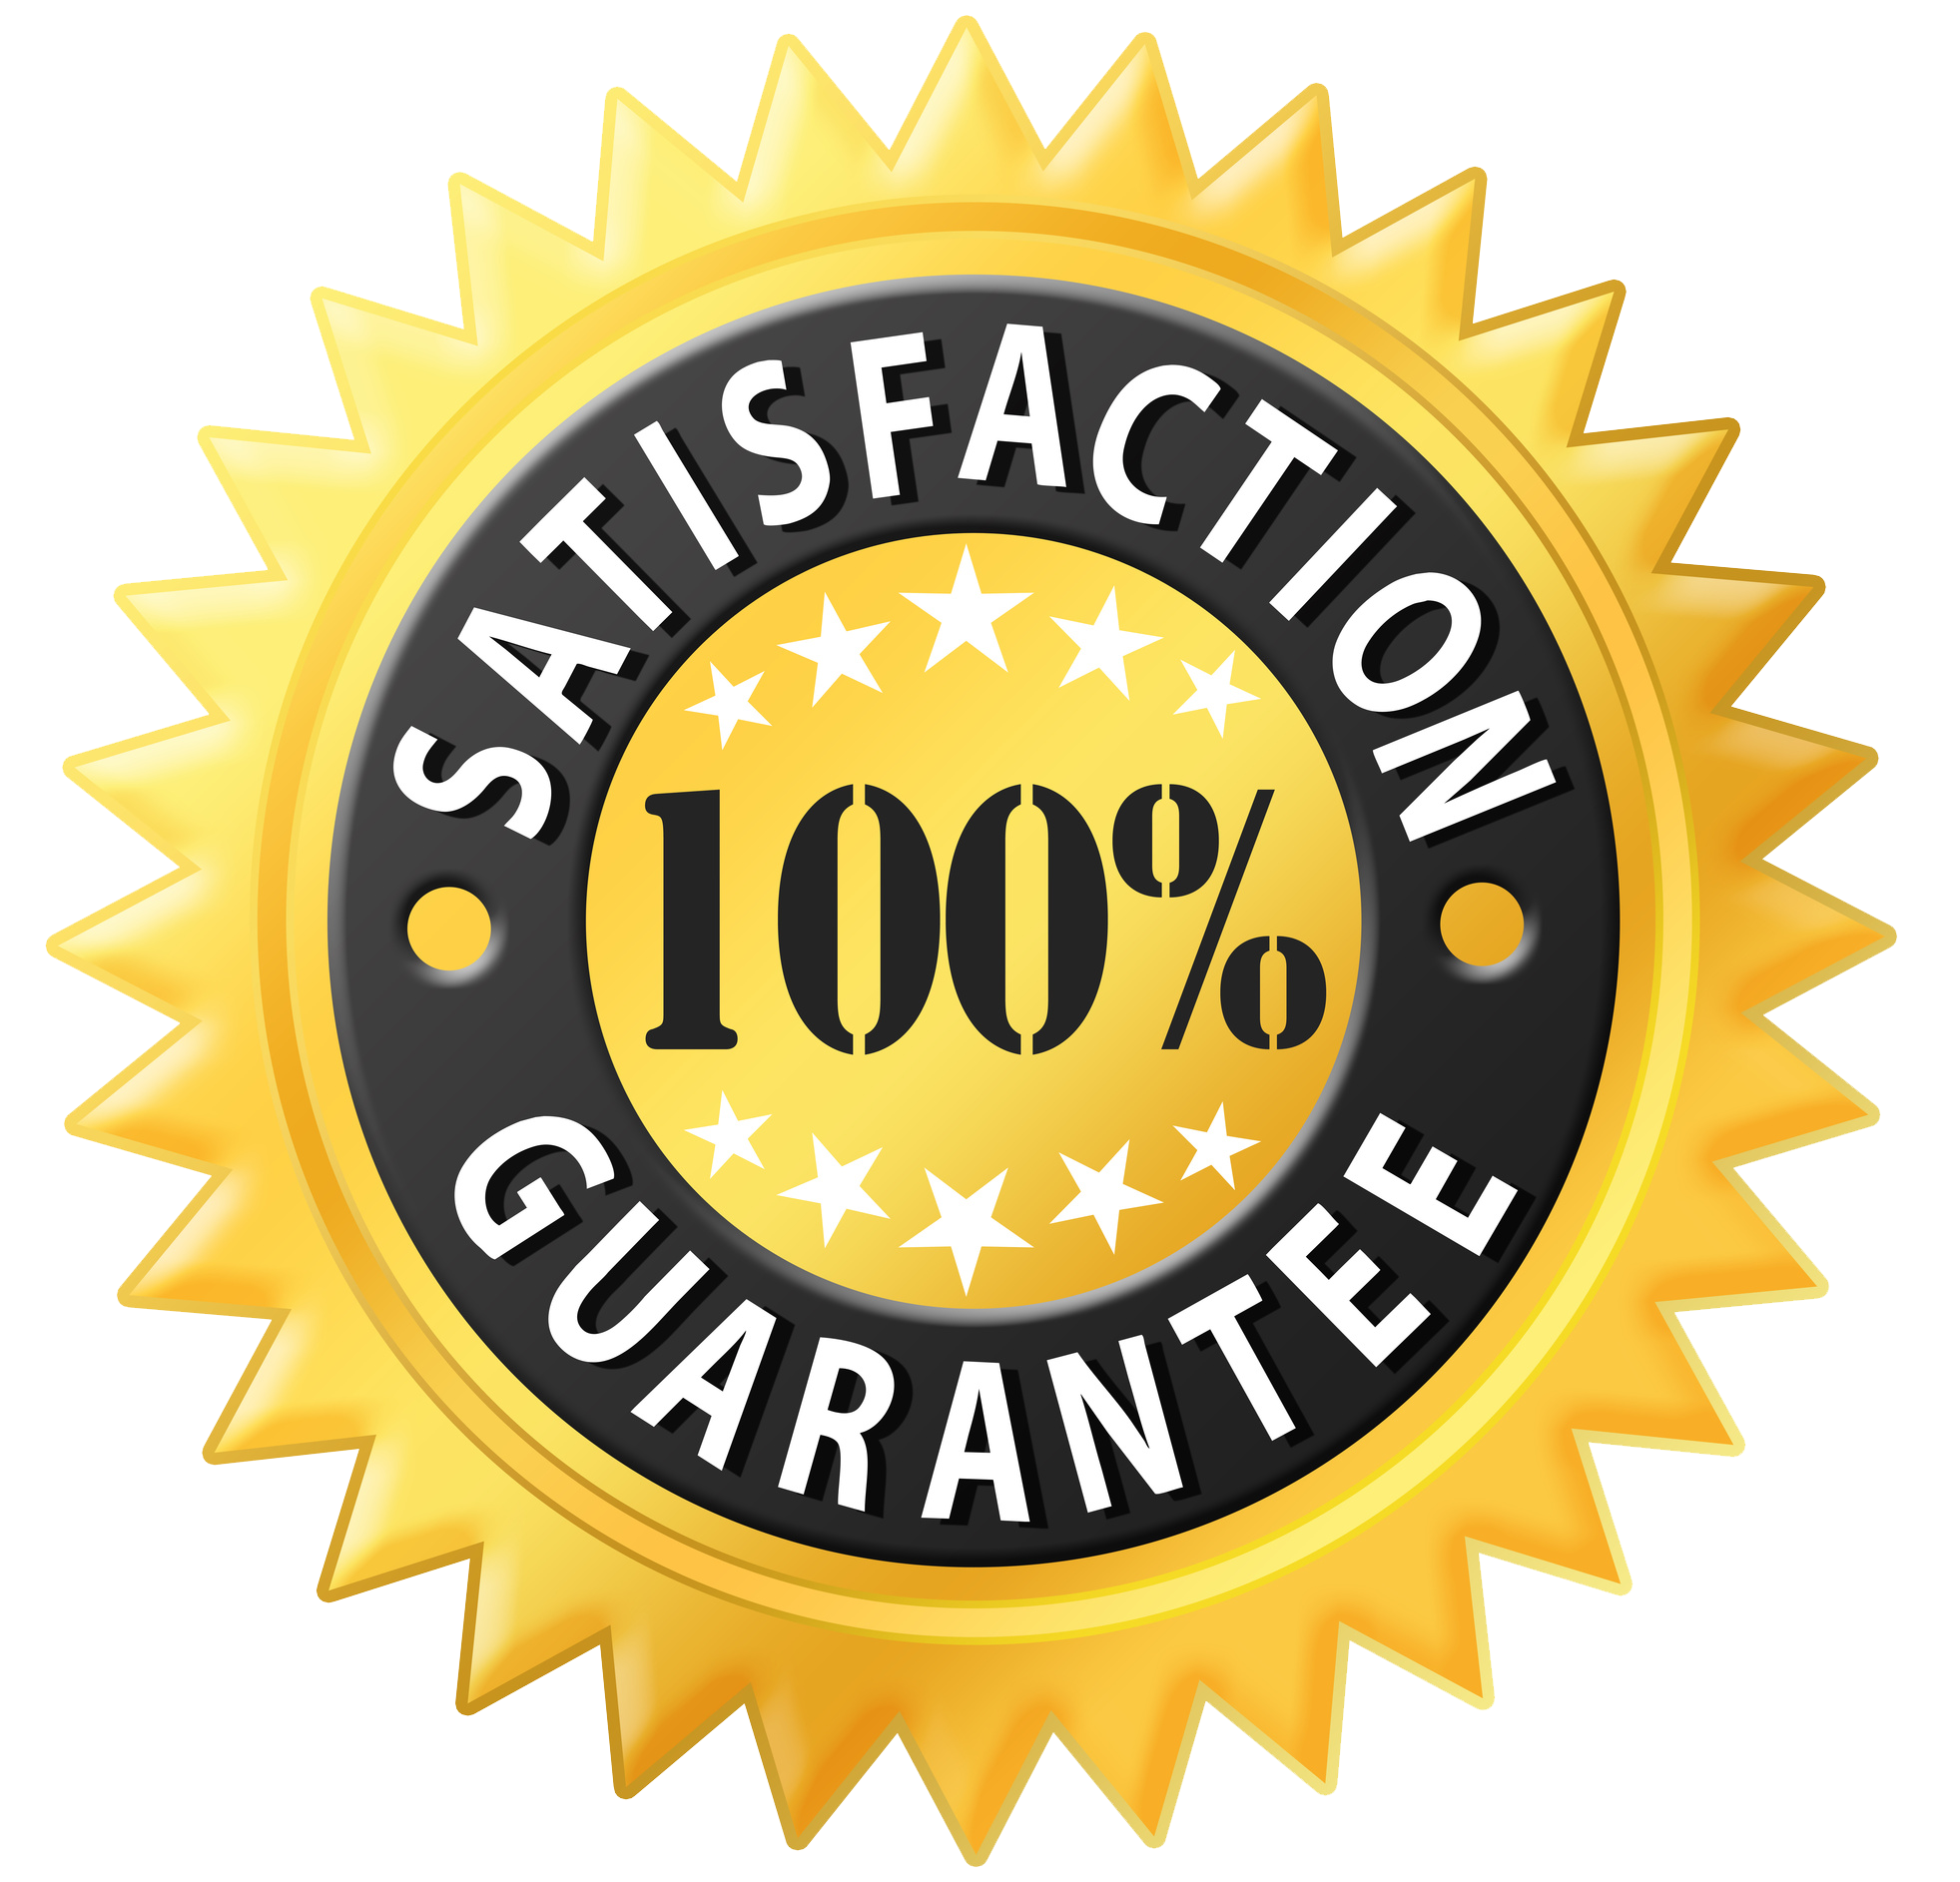 louisville home remodeling renovation experts rh cpproperty com satisfaction 100 guaranteed logo 100% Satisfaction Guaranteed Logo Clip Art